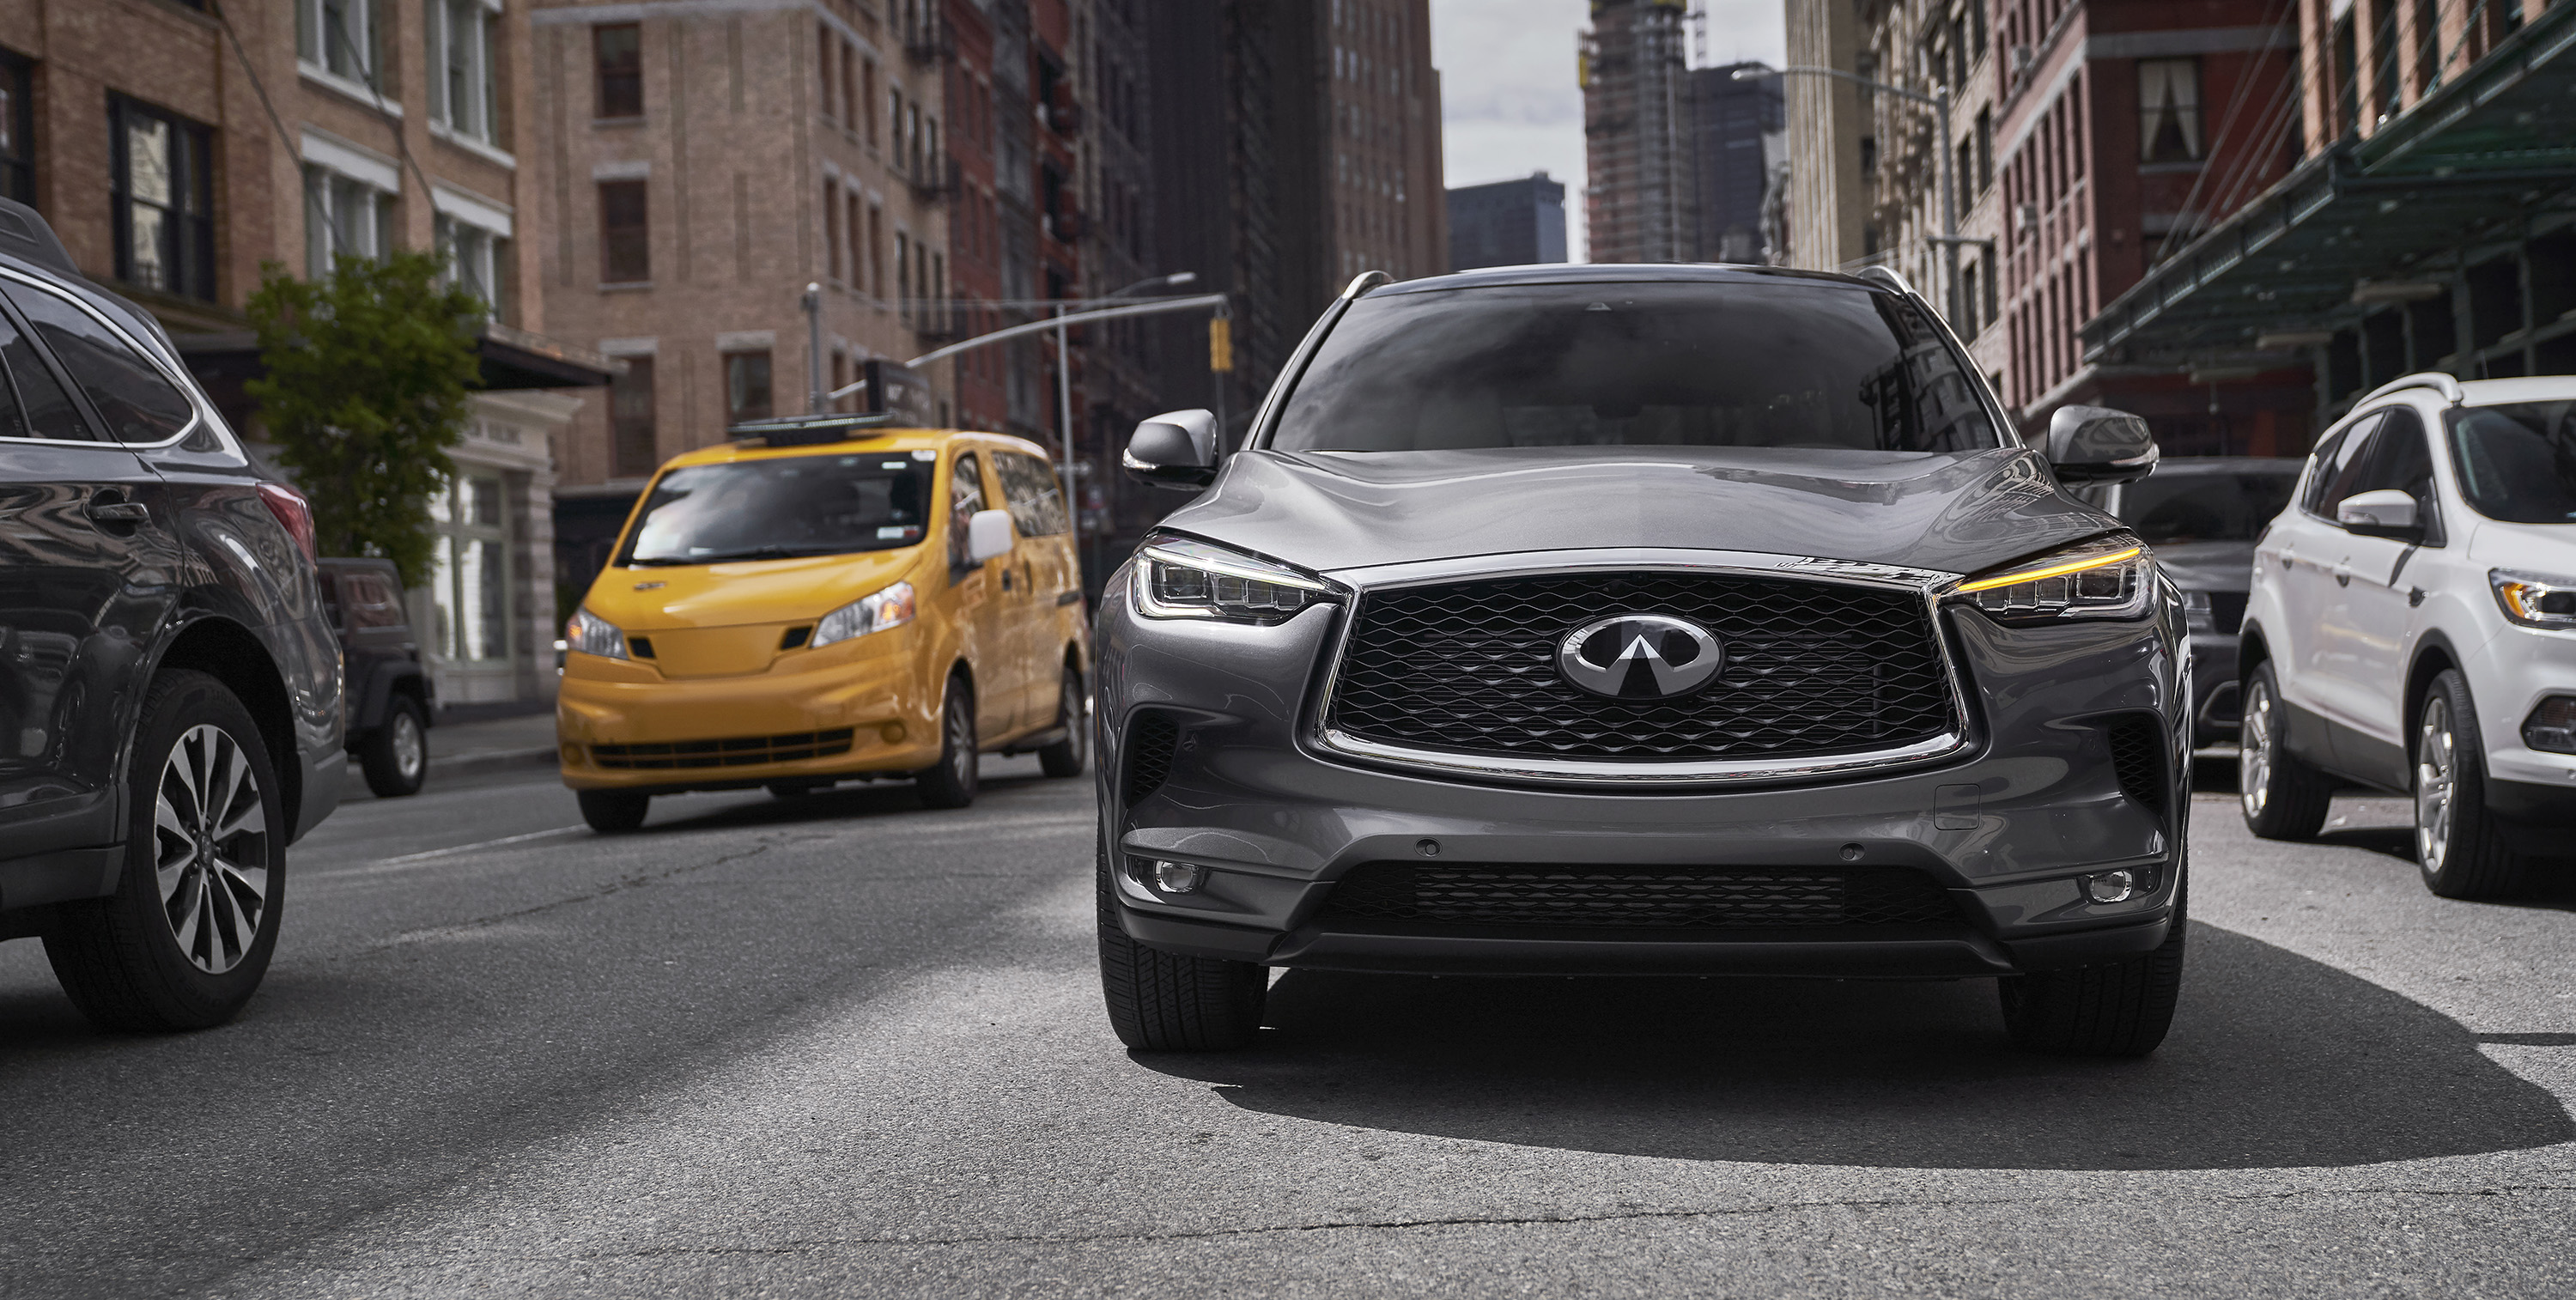 2020 INFINITI QX50 Luxury Crossover Driving Through An Urban Area